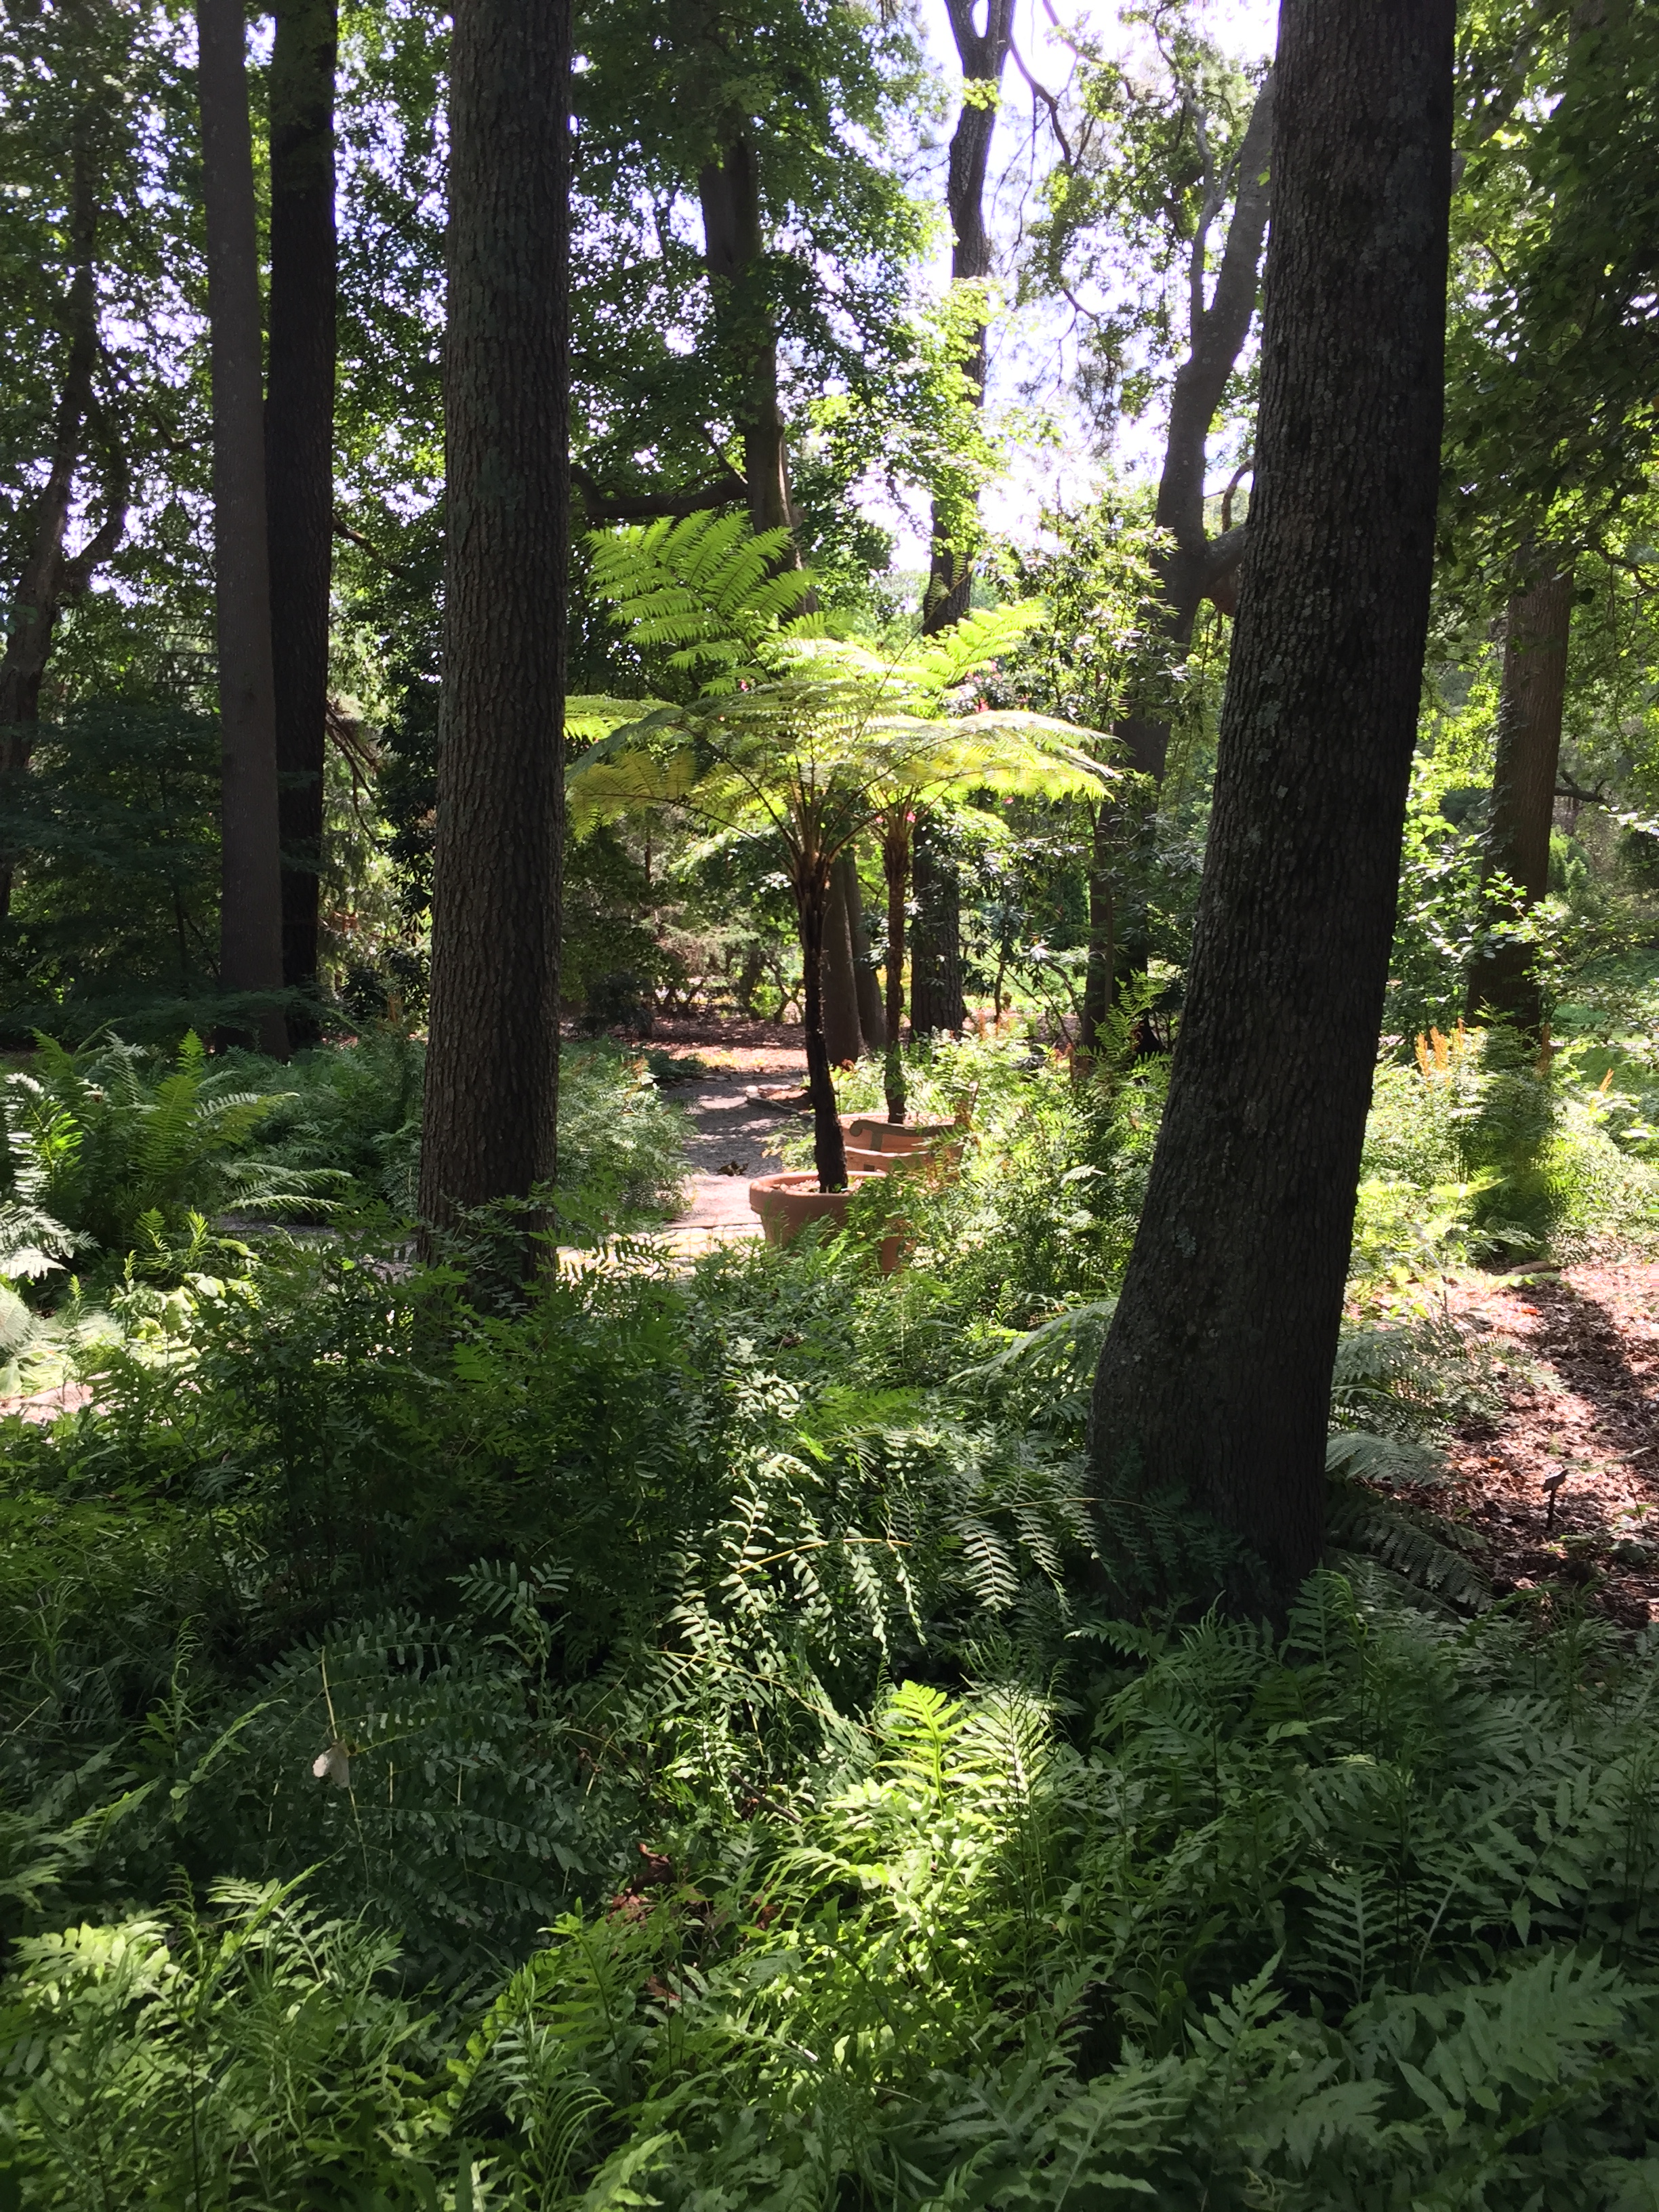 Ferns create a carpet under a canopy of maples, sweetgums, hollies, and pines in the Fern Glade. Photo © 2018 Elaine Mills.